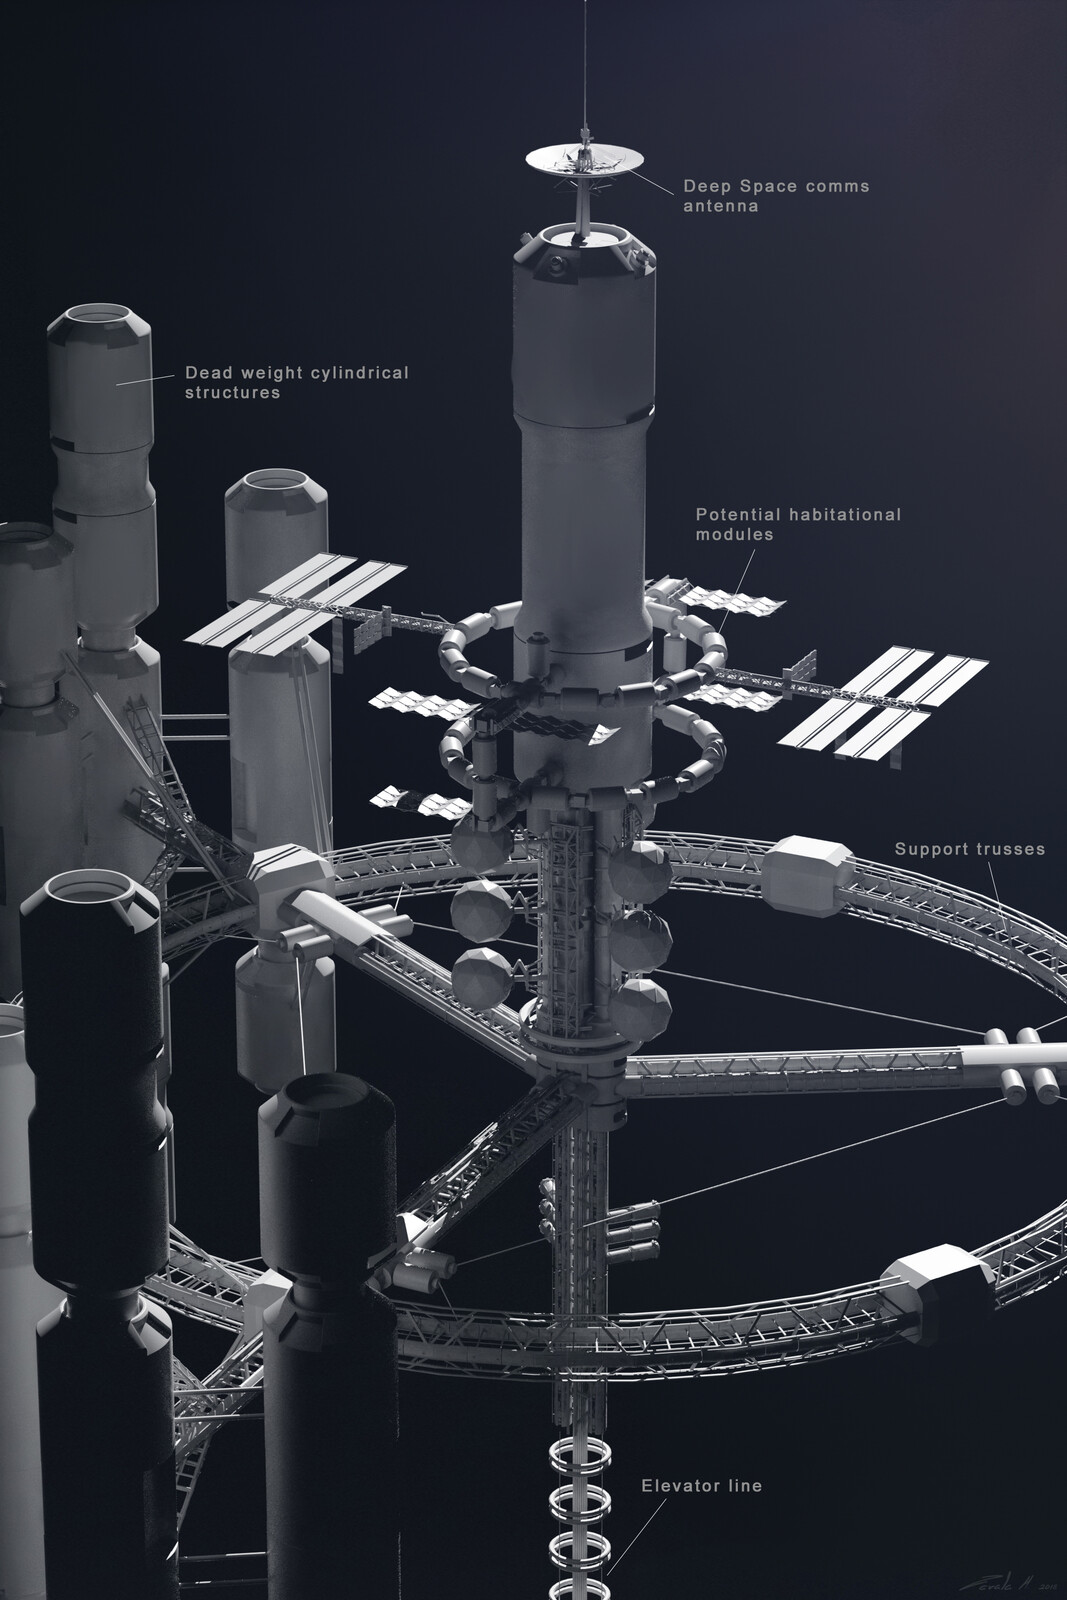 In the end the top of the space elevator was composed only by deep space antennas.